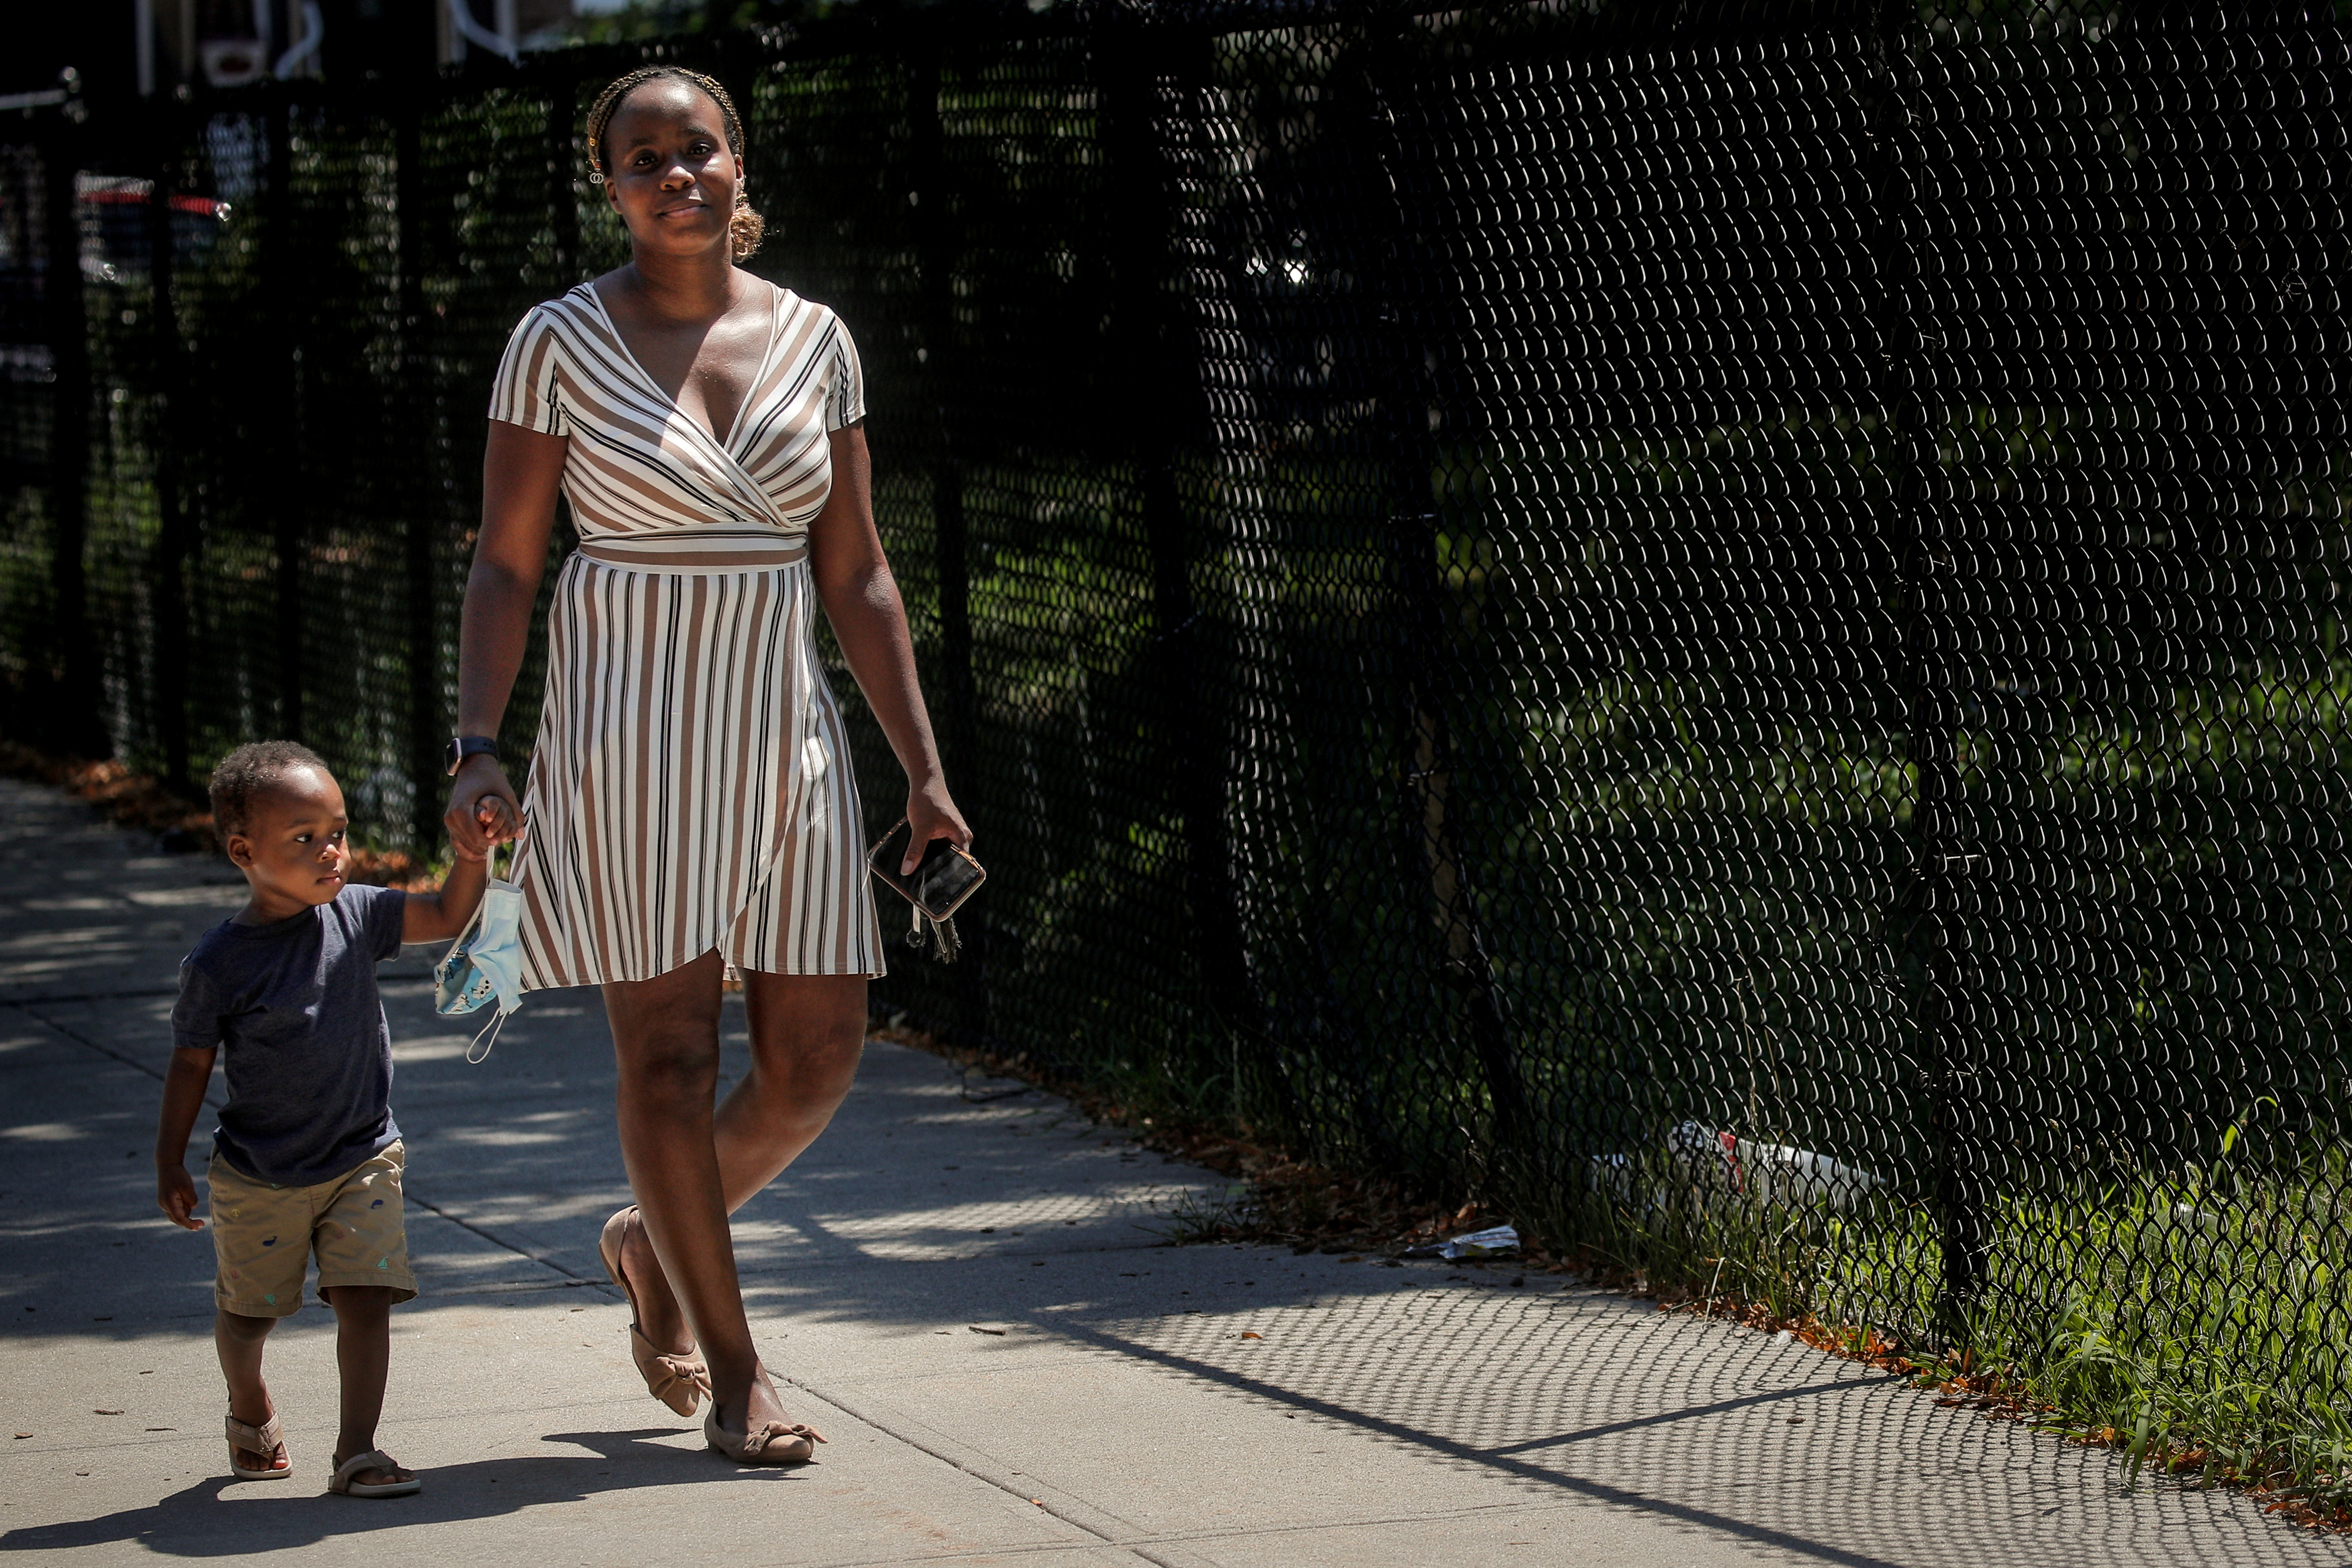 Chantel Springer walks with her son Jasiah in the Brooklyn borough of New York, U.S., July 29, 2020.  Picture taken July 29, 2020.  REUTERS/Brendan McDermid/File Photo